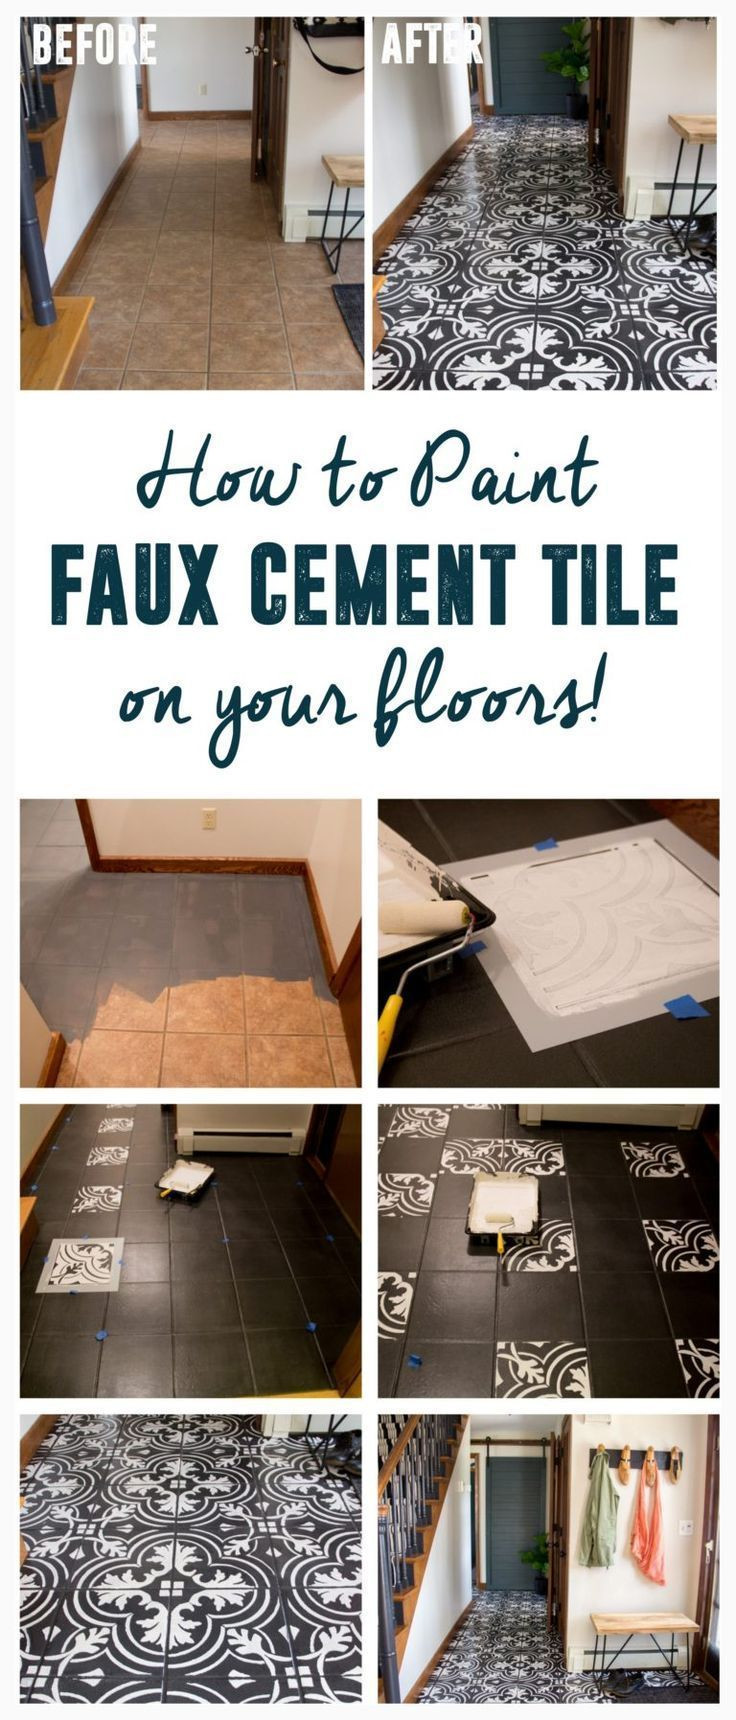 Hardwood Flooring Depot Irvine Ca Of 1409 Best Diy Home Improvement Images On Pinterest Room Tiles with Regard to Diy Faux Cement Tile How to Paint Tile Diy Faux Cement Tile Floors Www